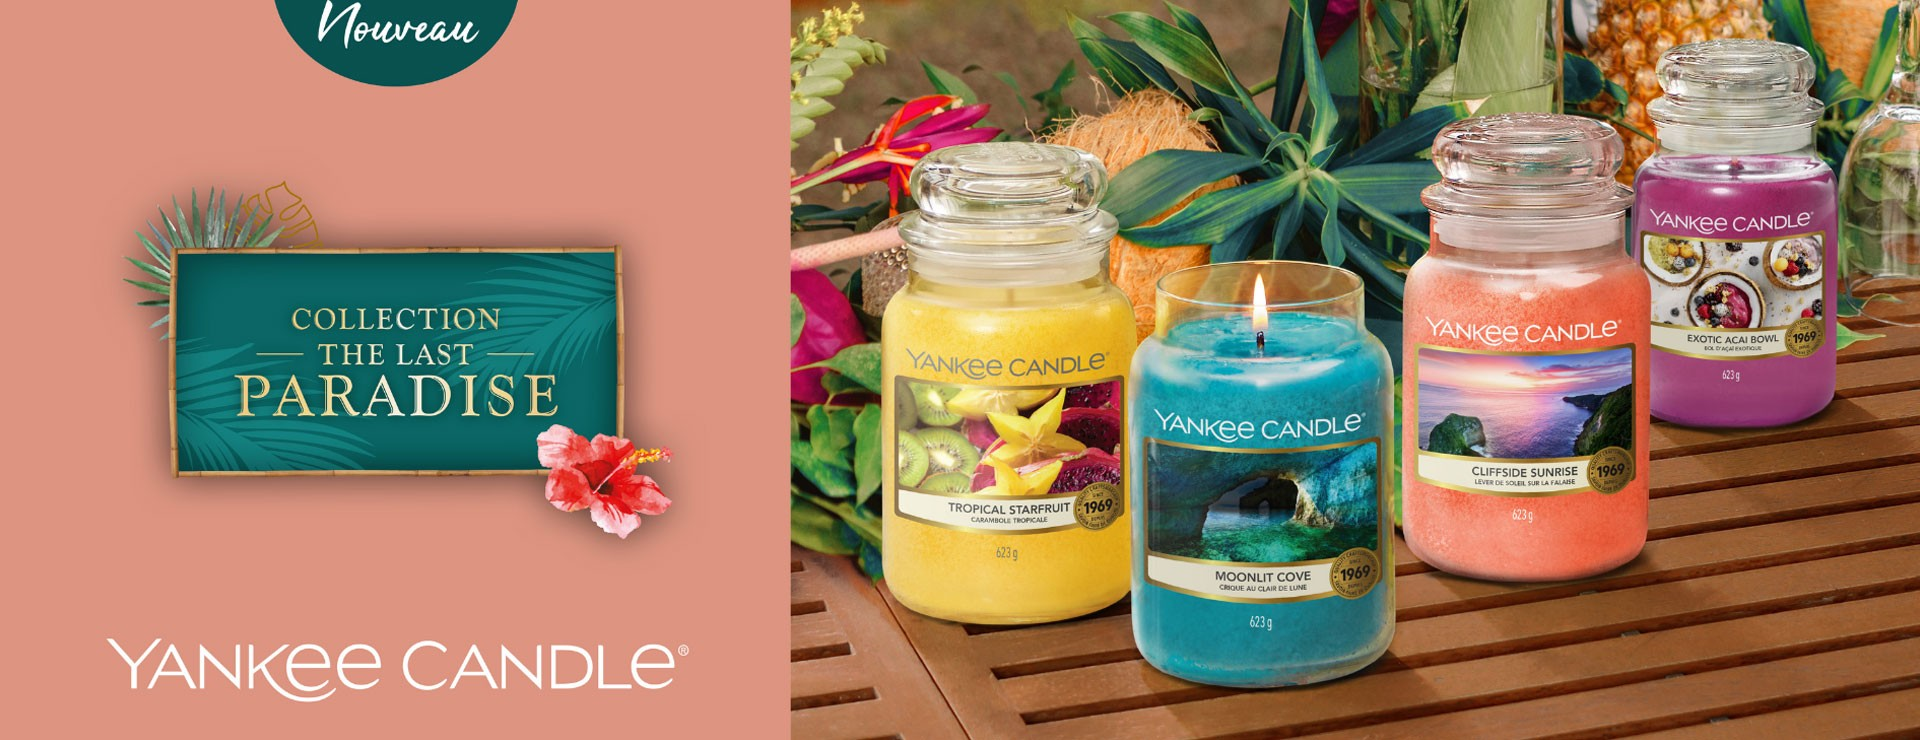 Yankee candle - Collection paradise